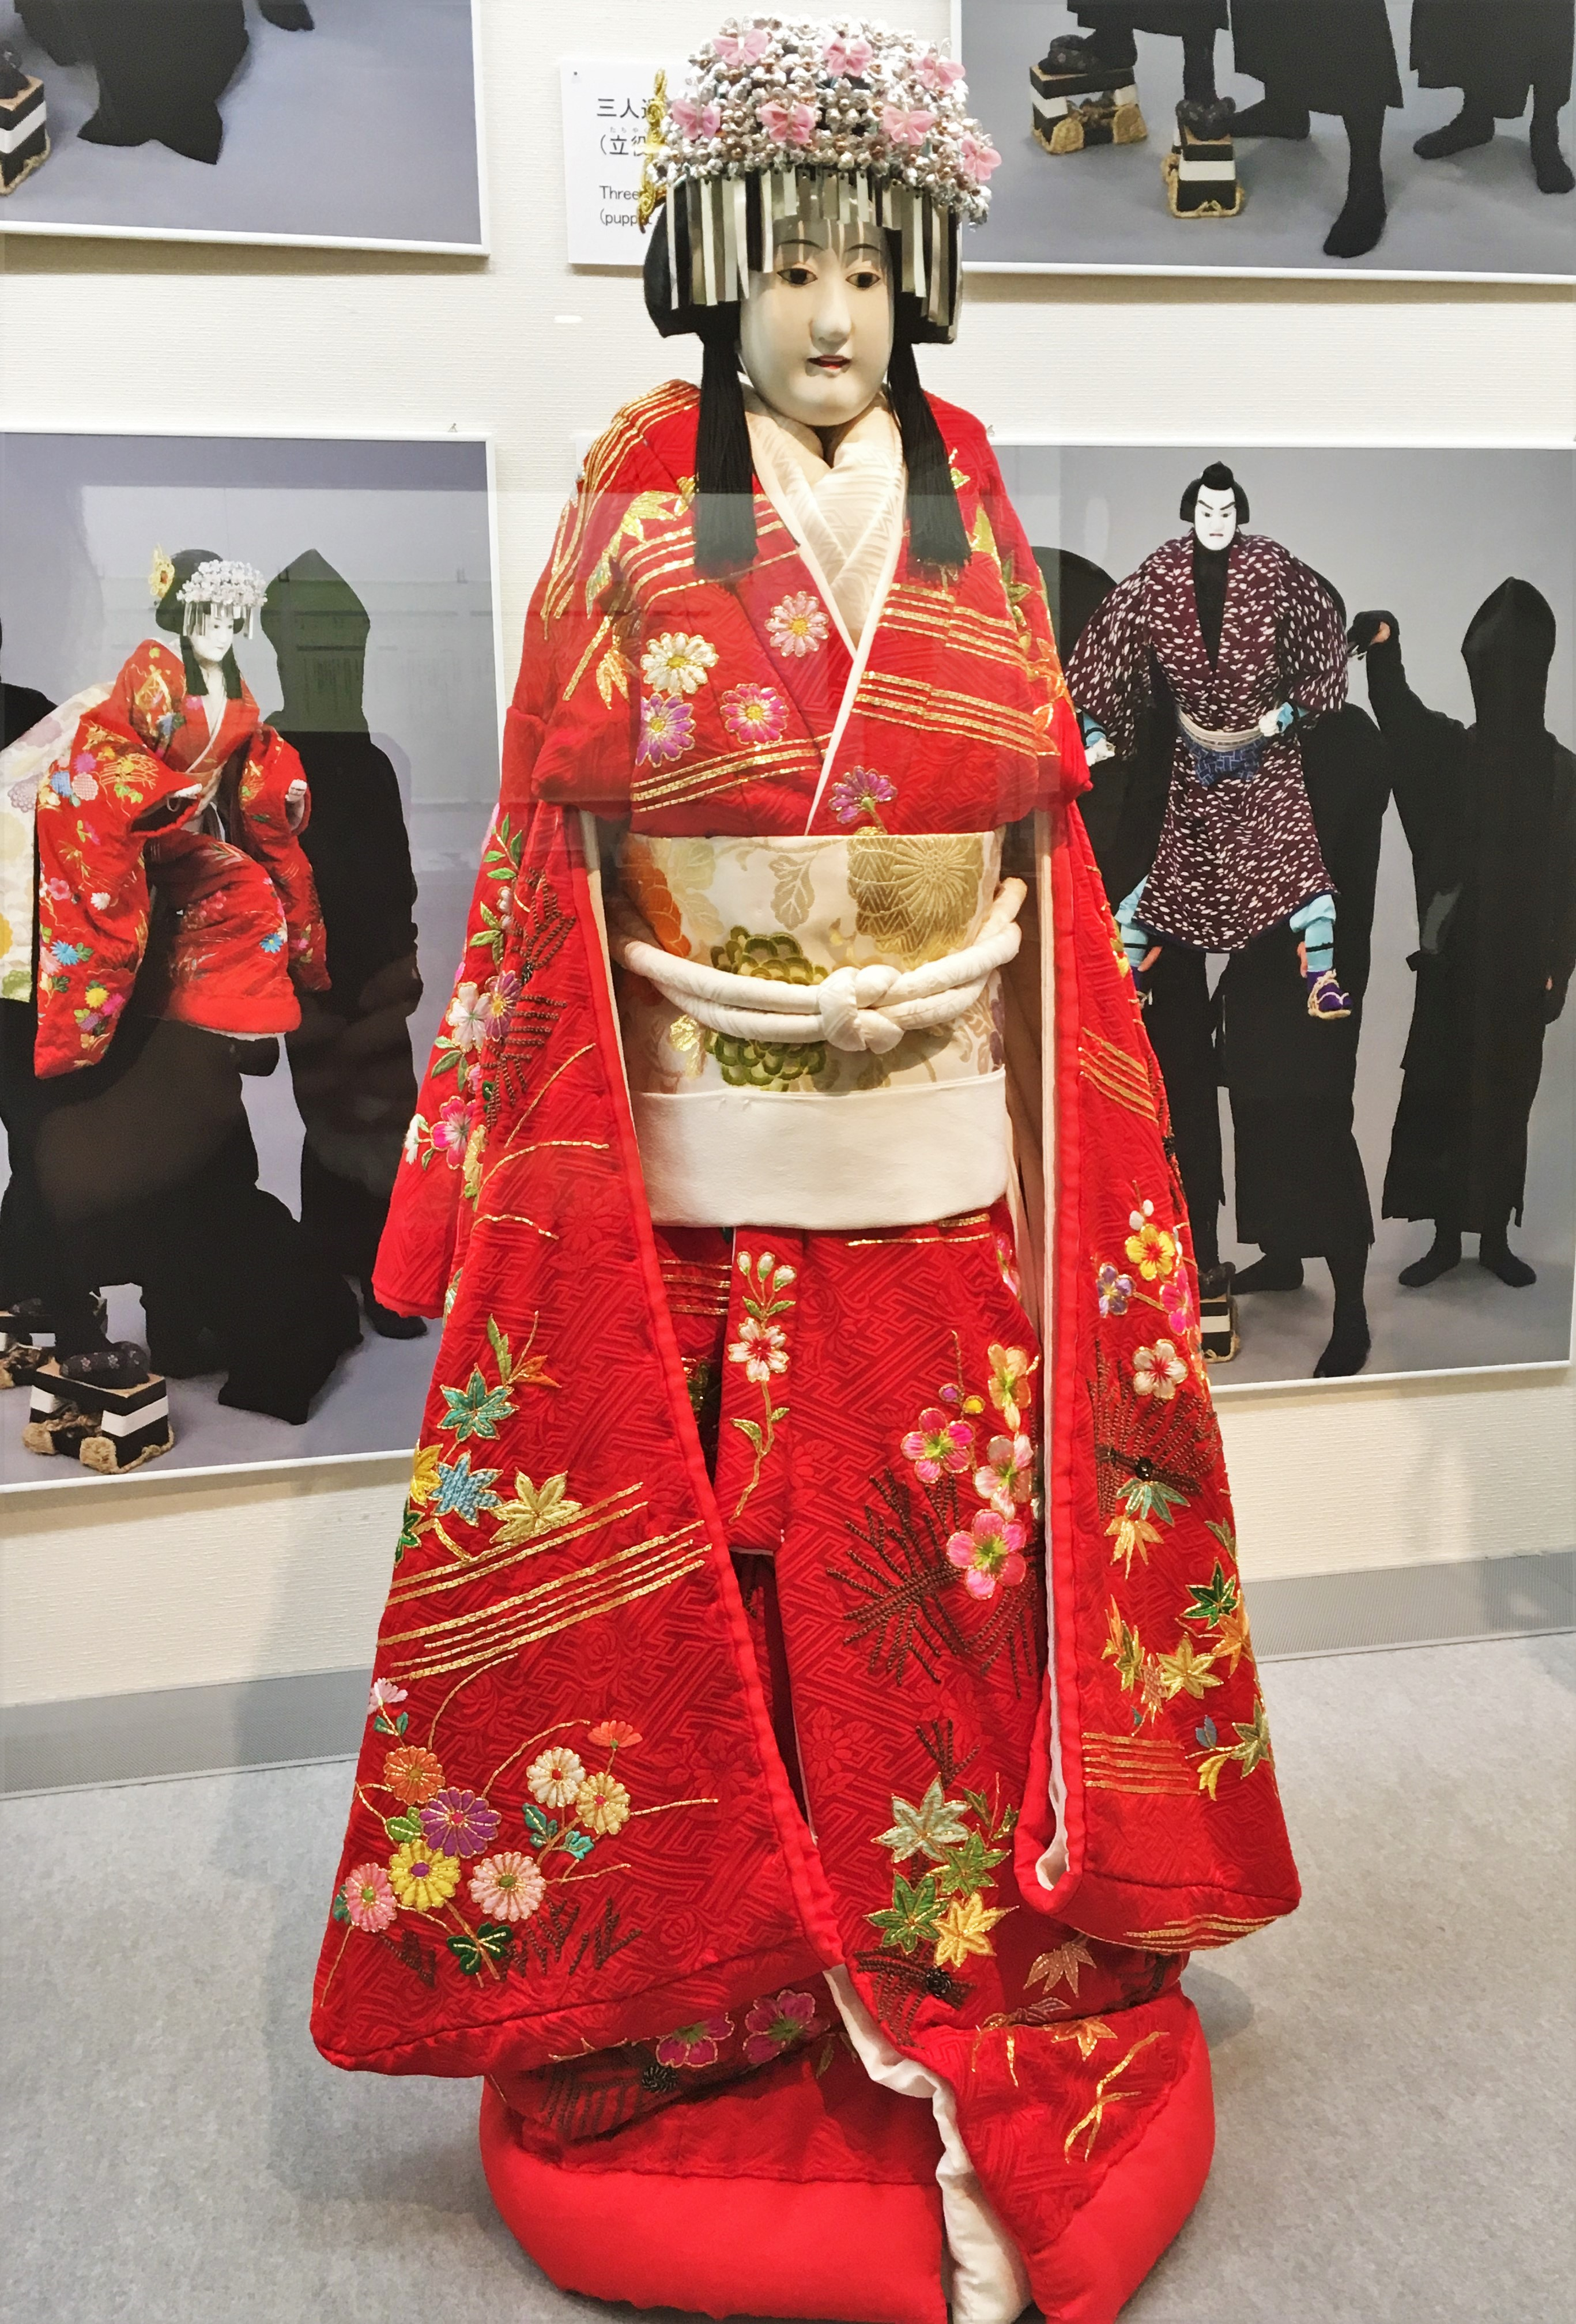 bunraku puppet dressed in a chrerry blossom and silver head dress and a red kimono